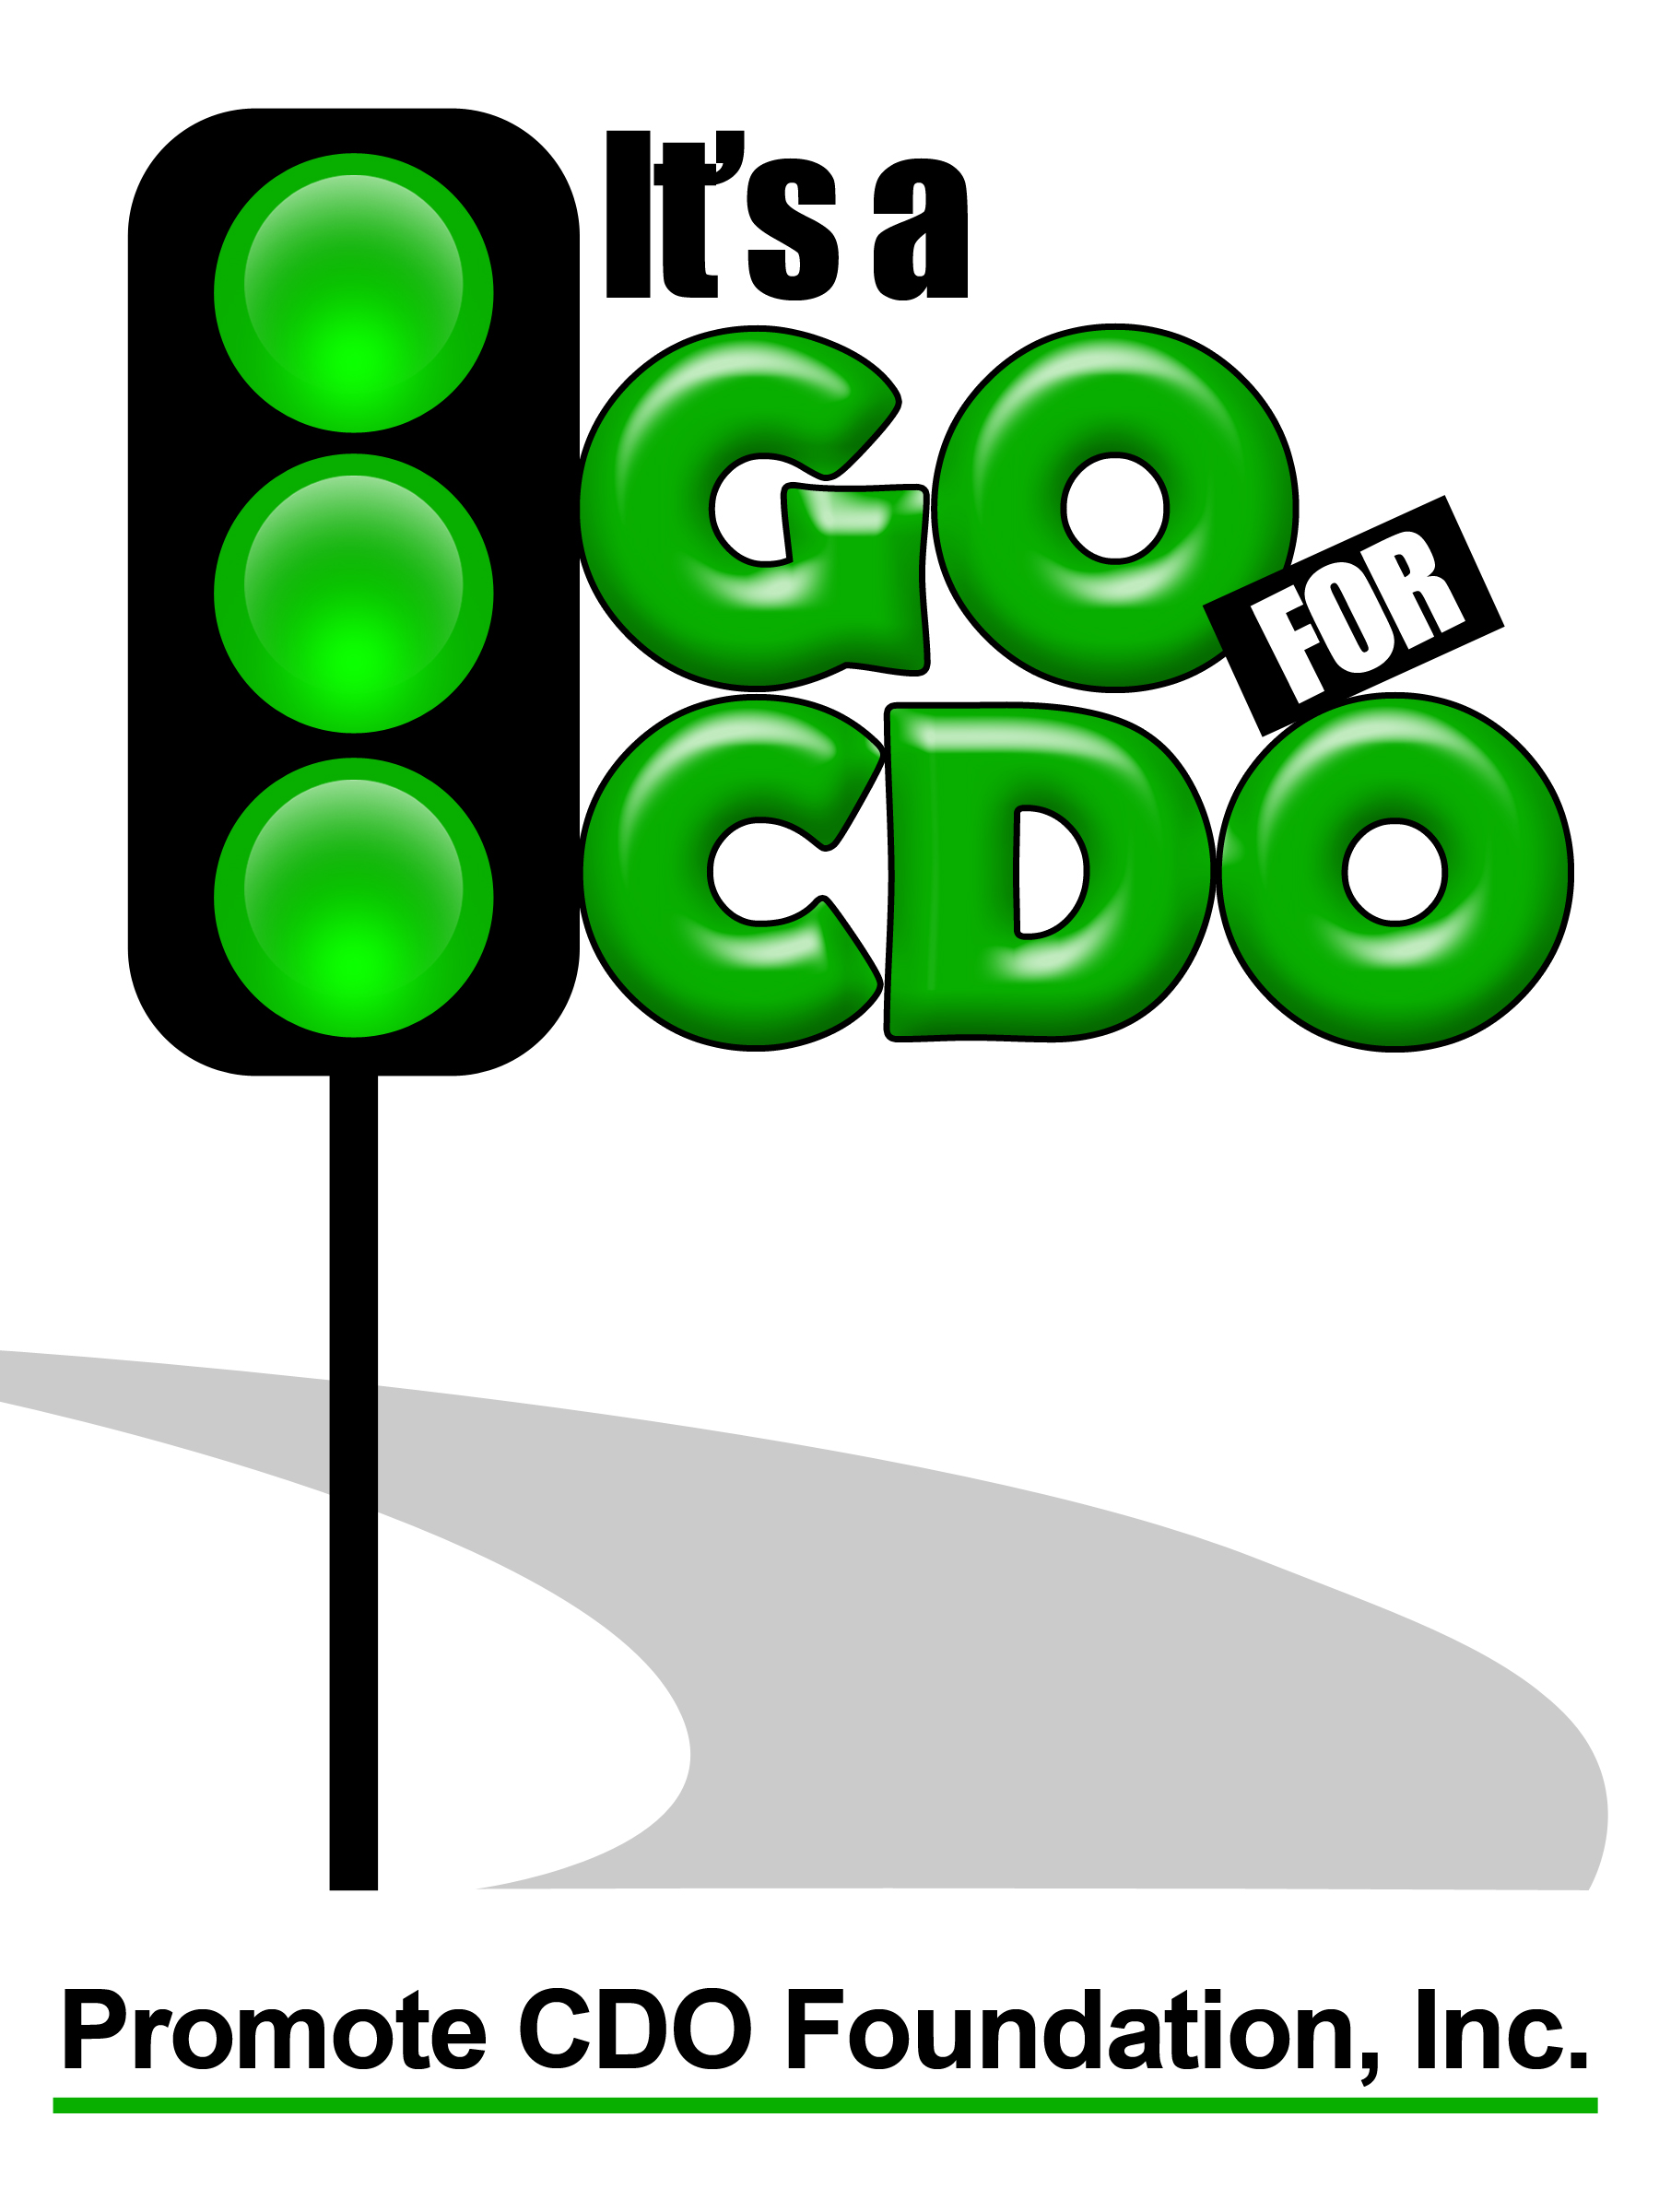 go for cdo 4